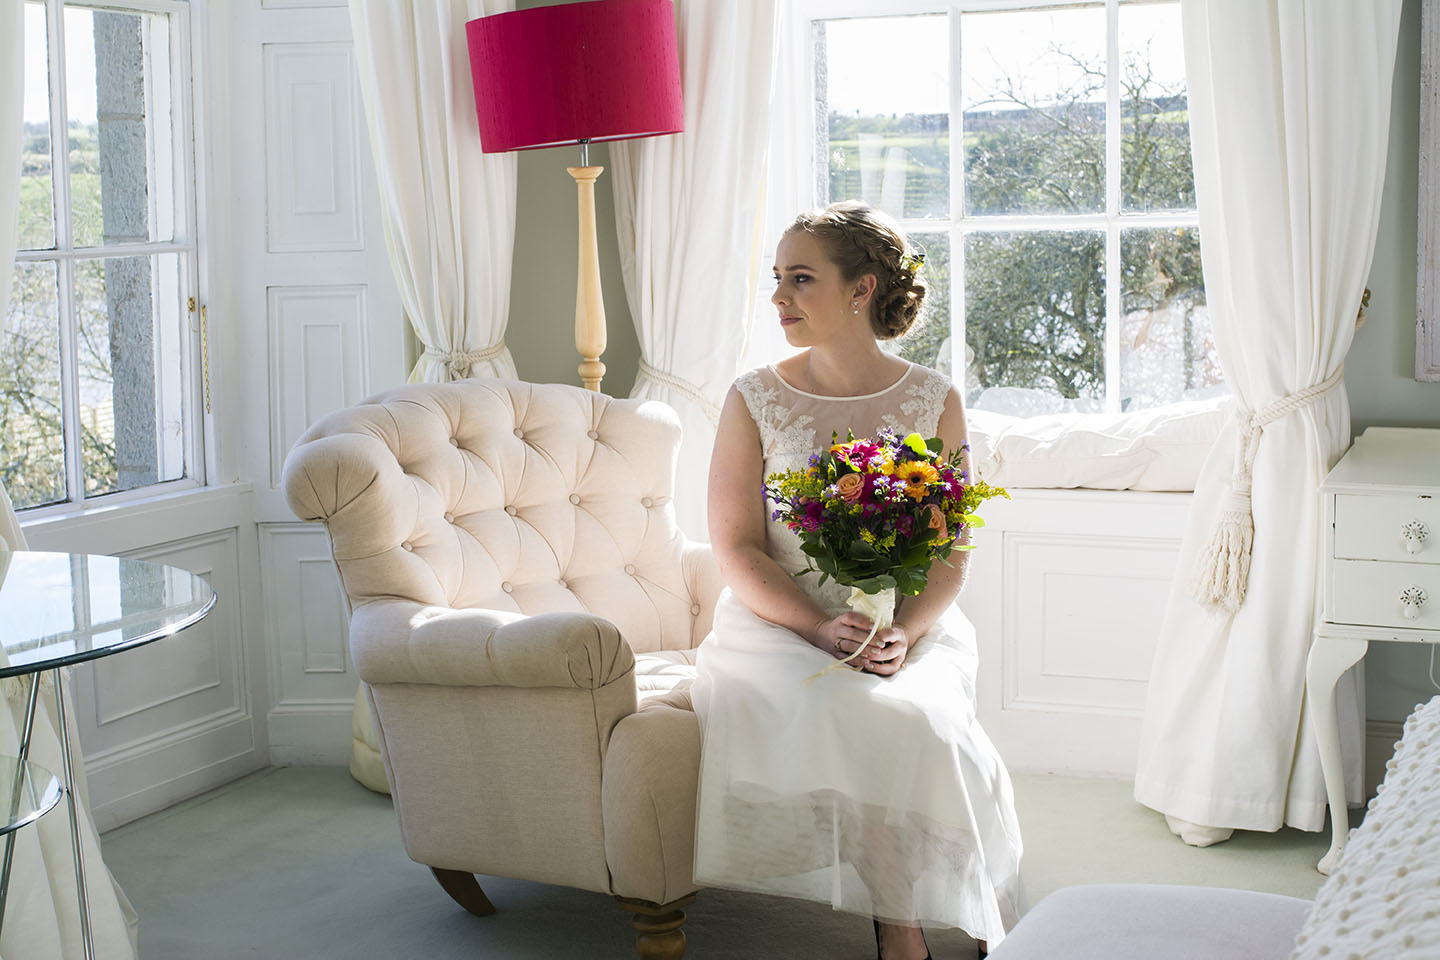 irish wedding photographer Millhouse Hotel Meath IB2019 12 - Gallery